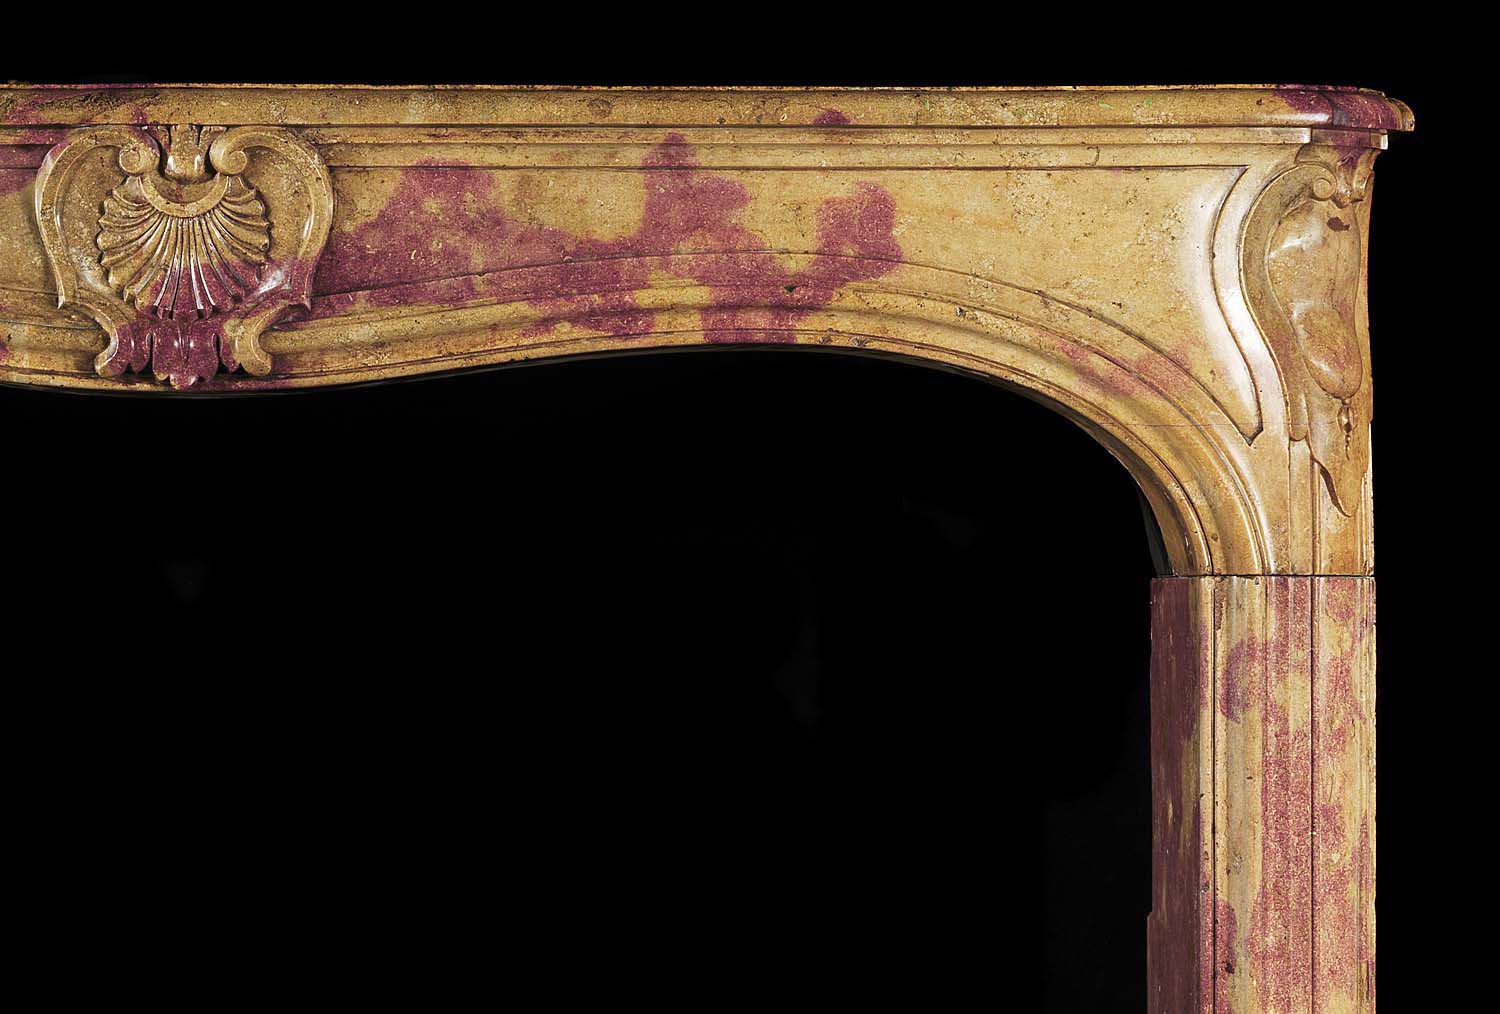 Antique Louis XV Chimneypiece in Burgundy Stone